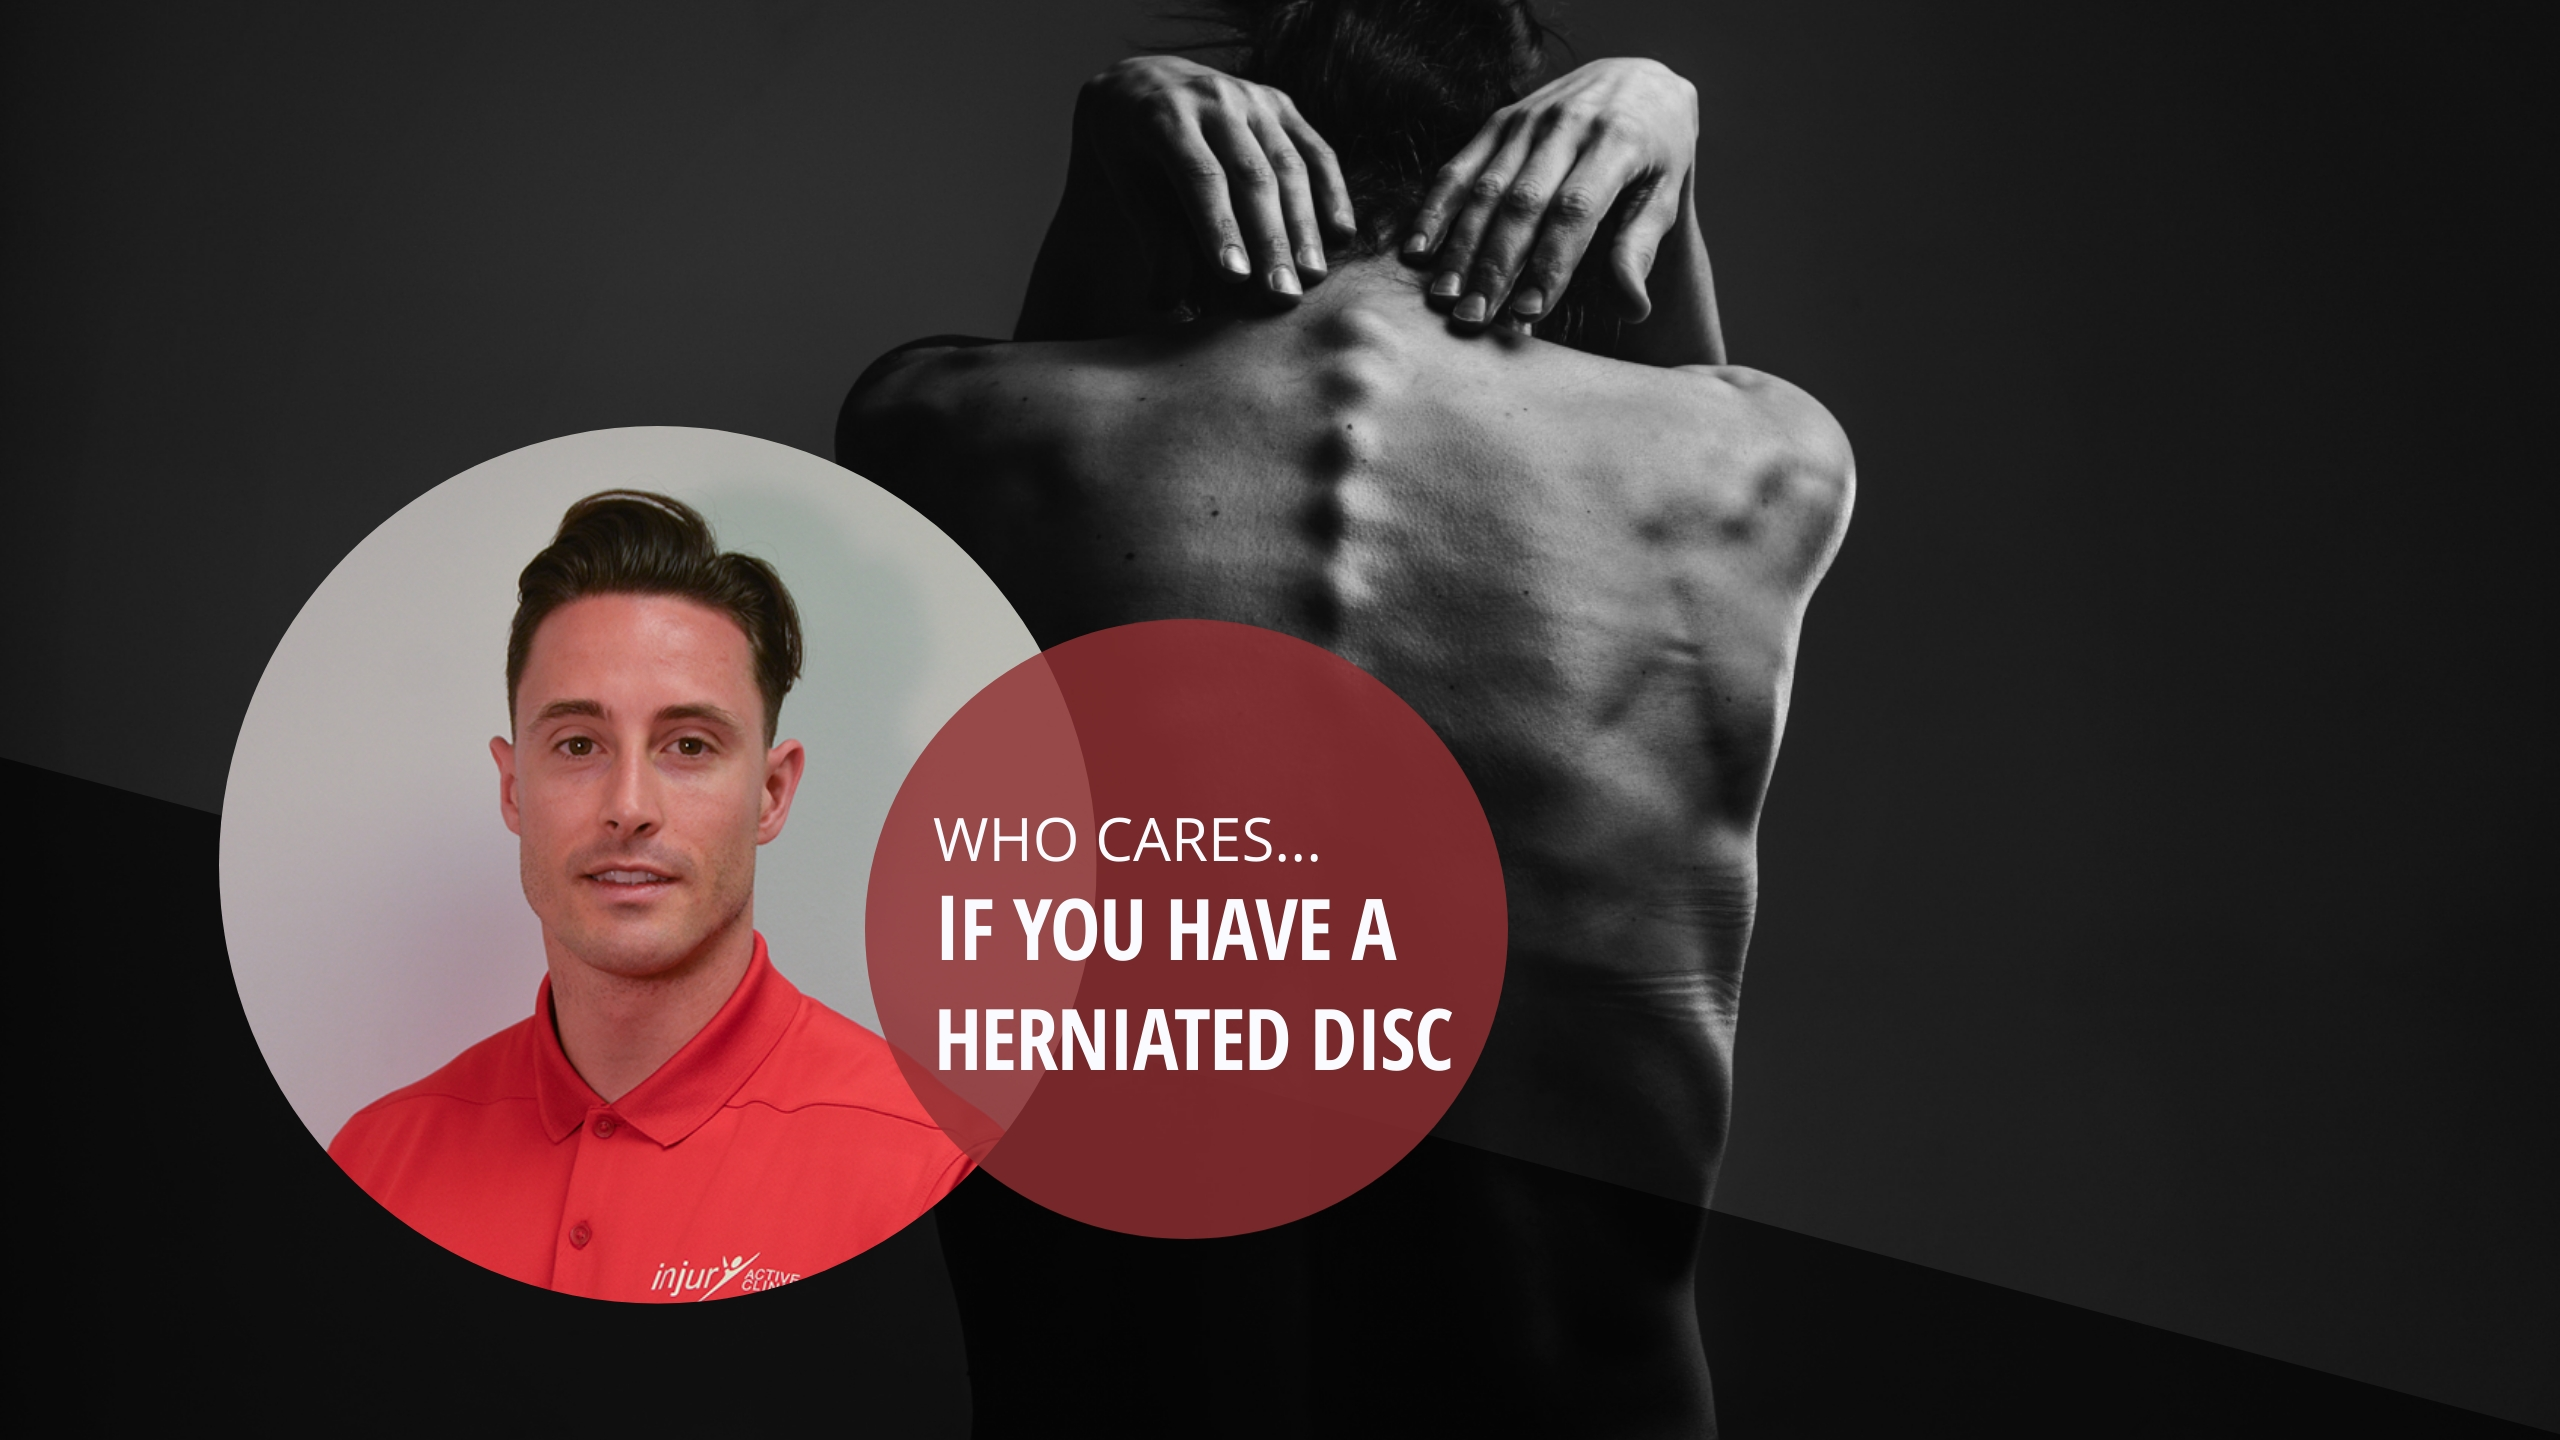 You have a herniated disc? WHO CARES?